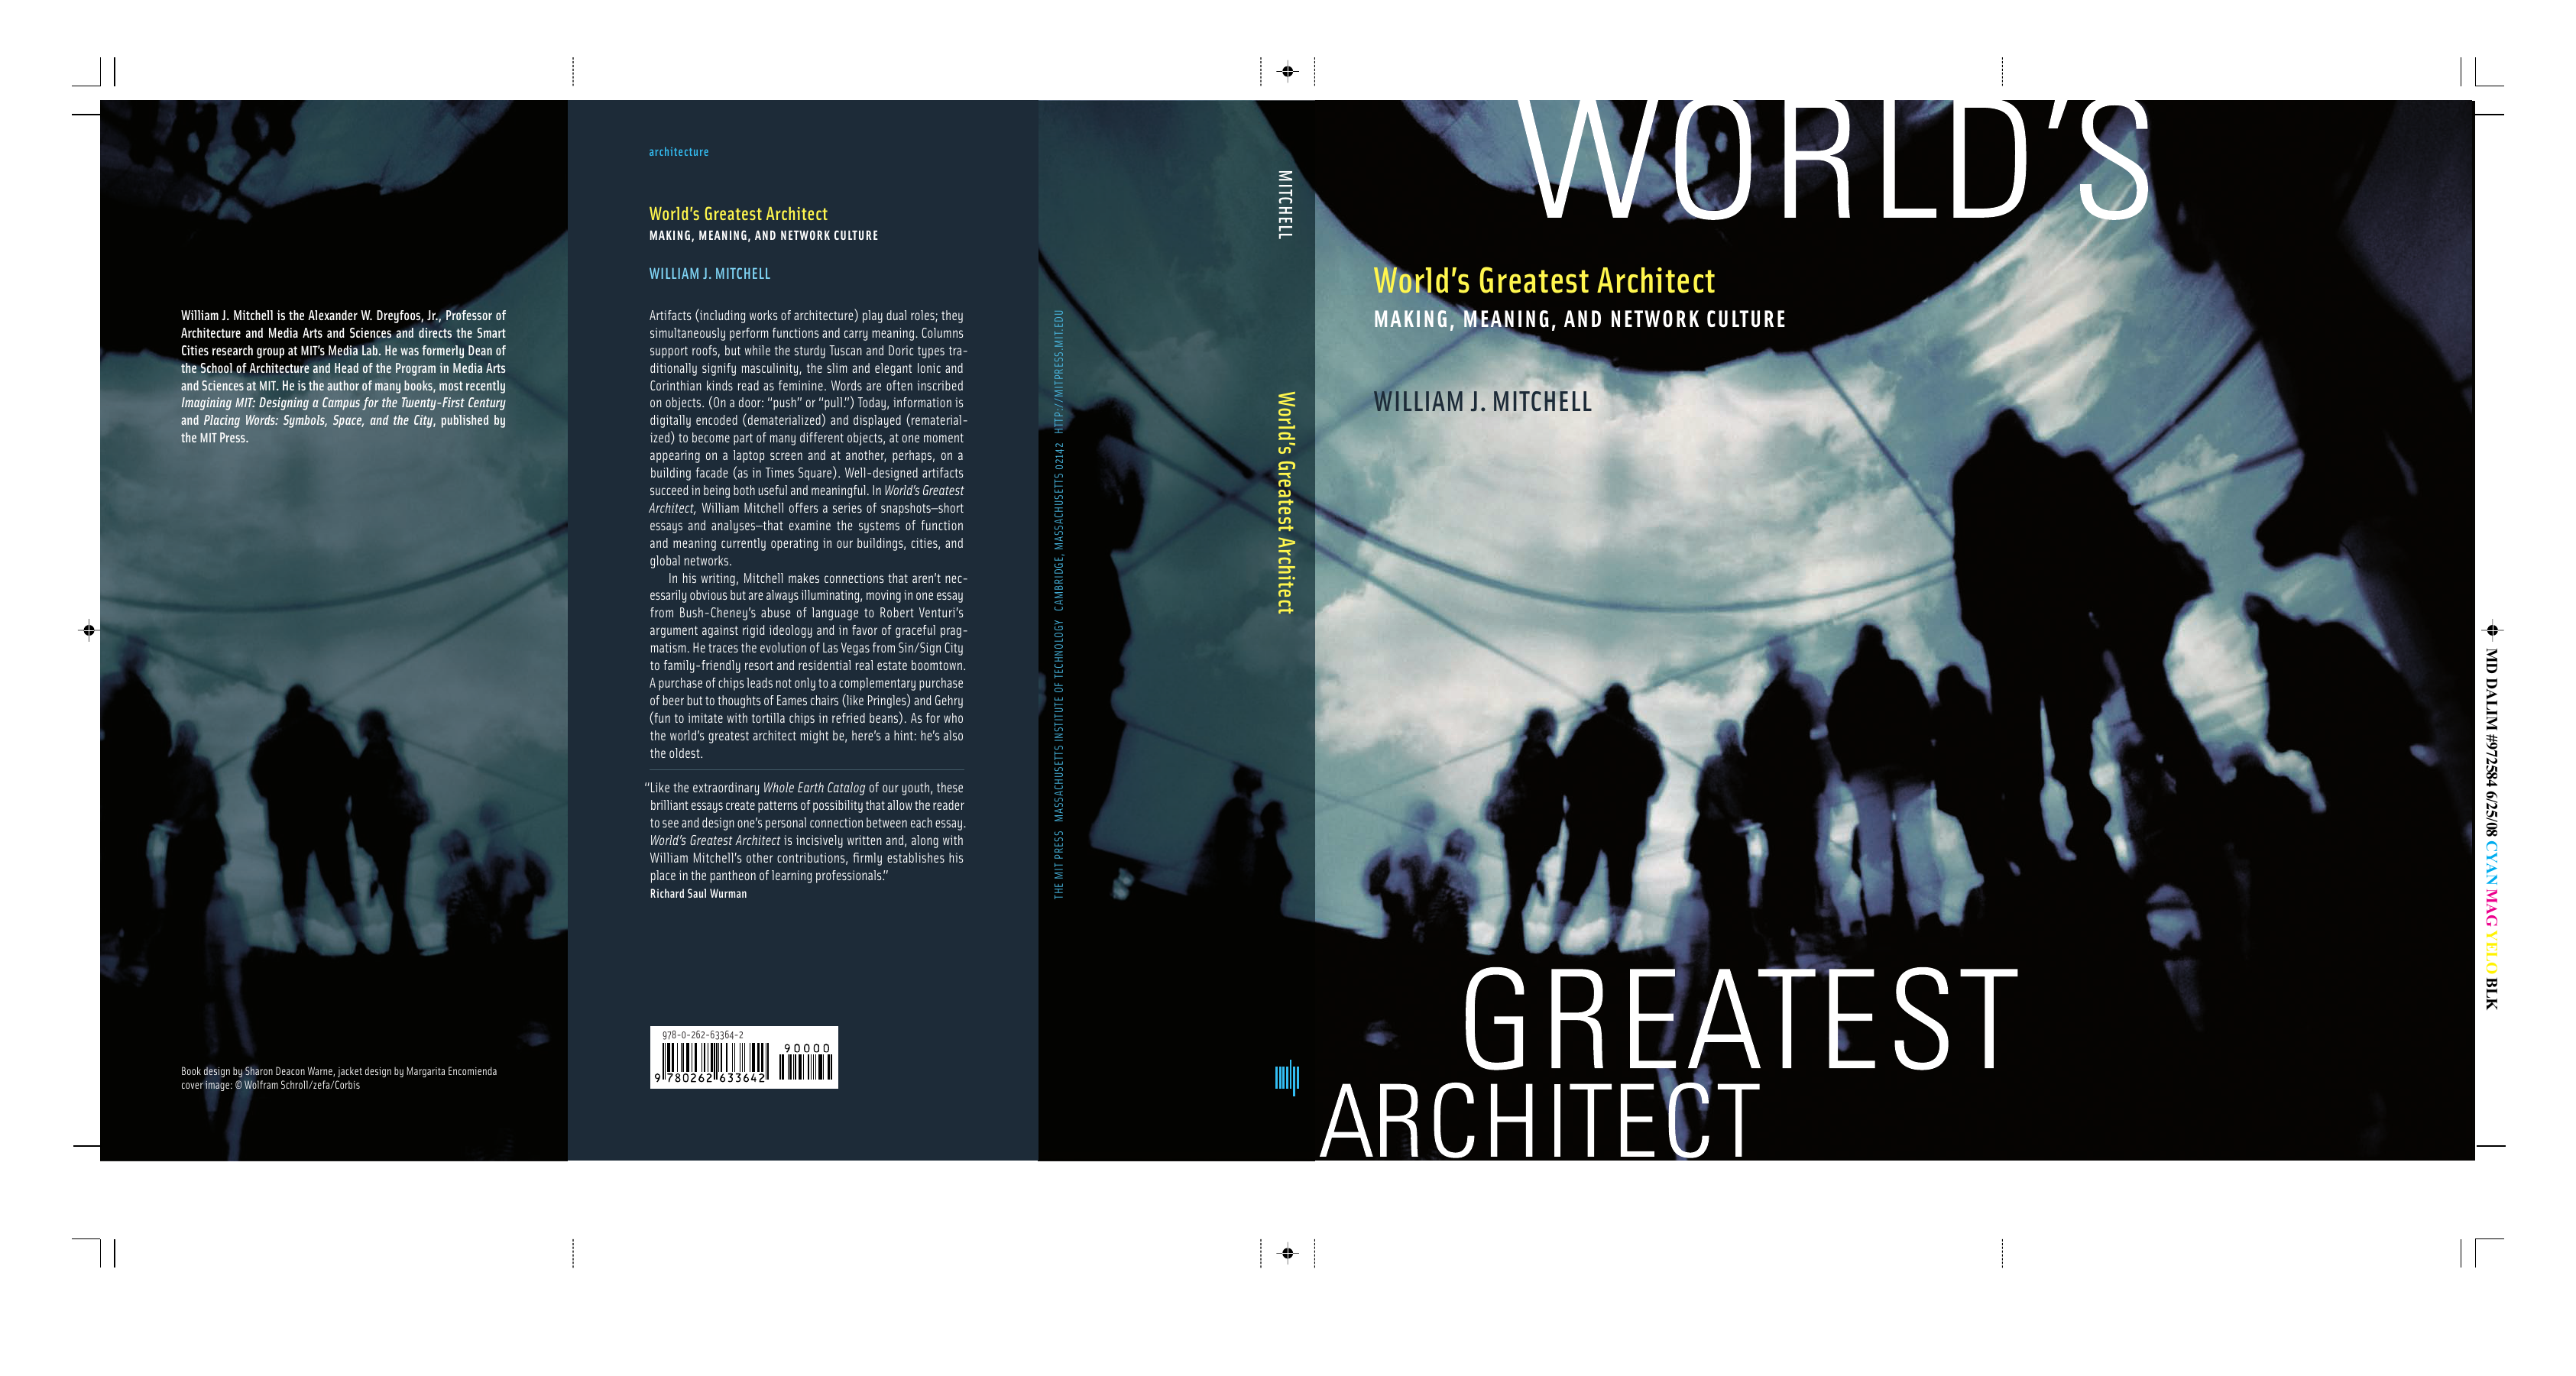 574858a6ca2 William J. Mitchell - Worlds Greatest Architect- Making Meaning and Network  Culture (2008 The MIT Press)